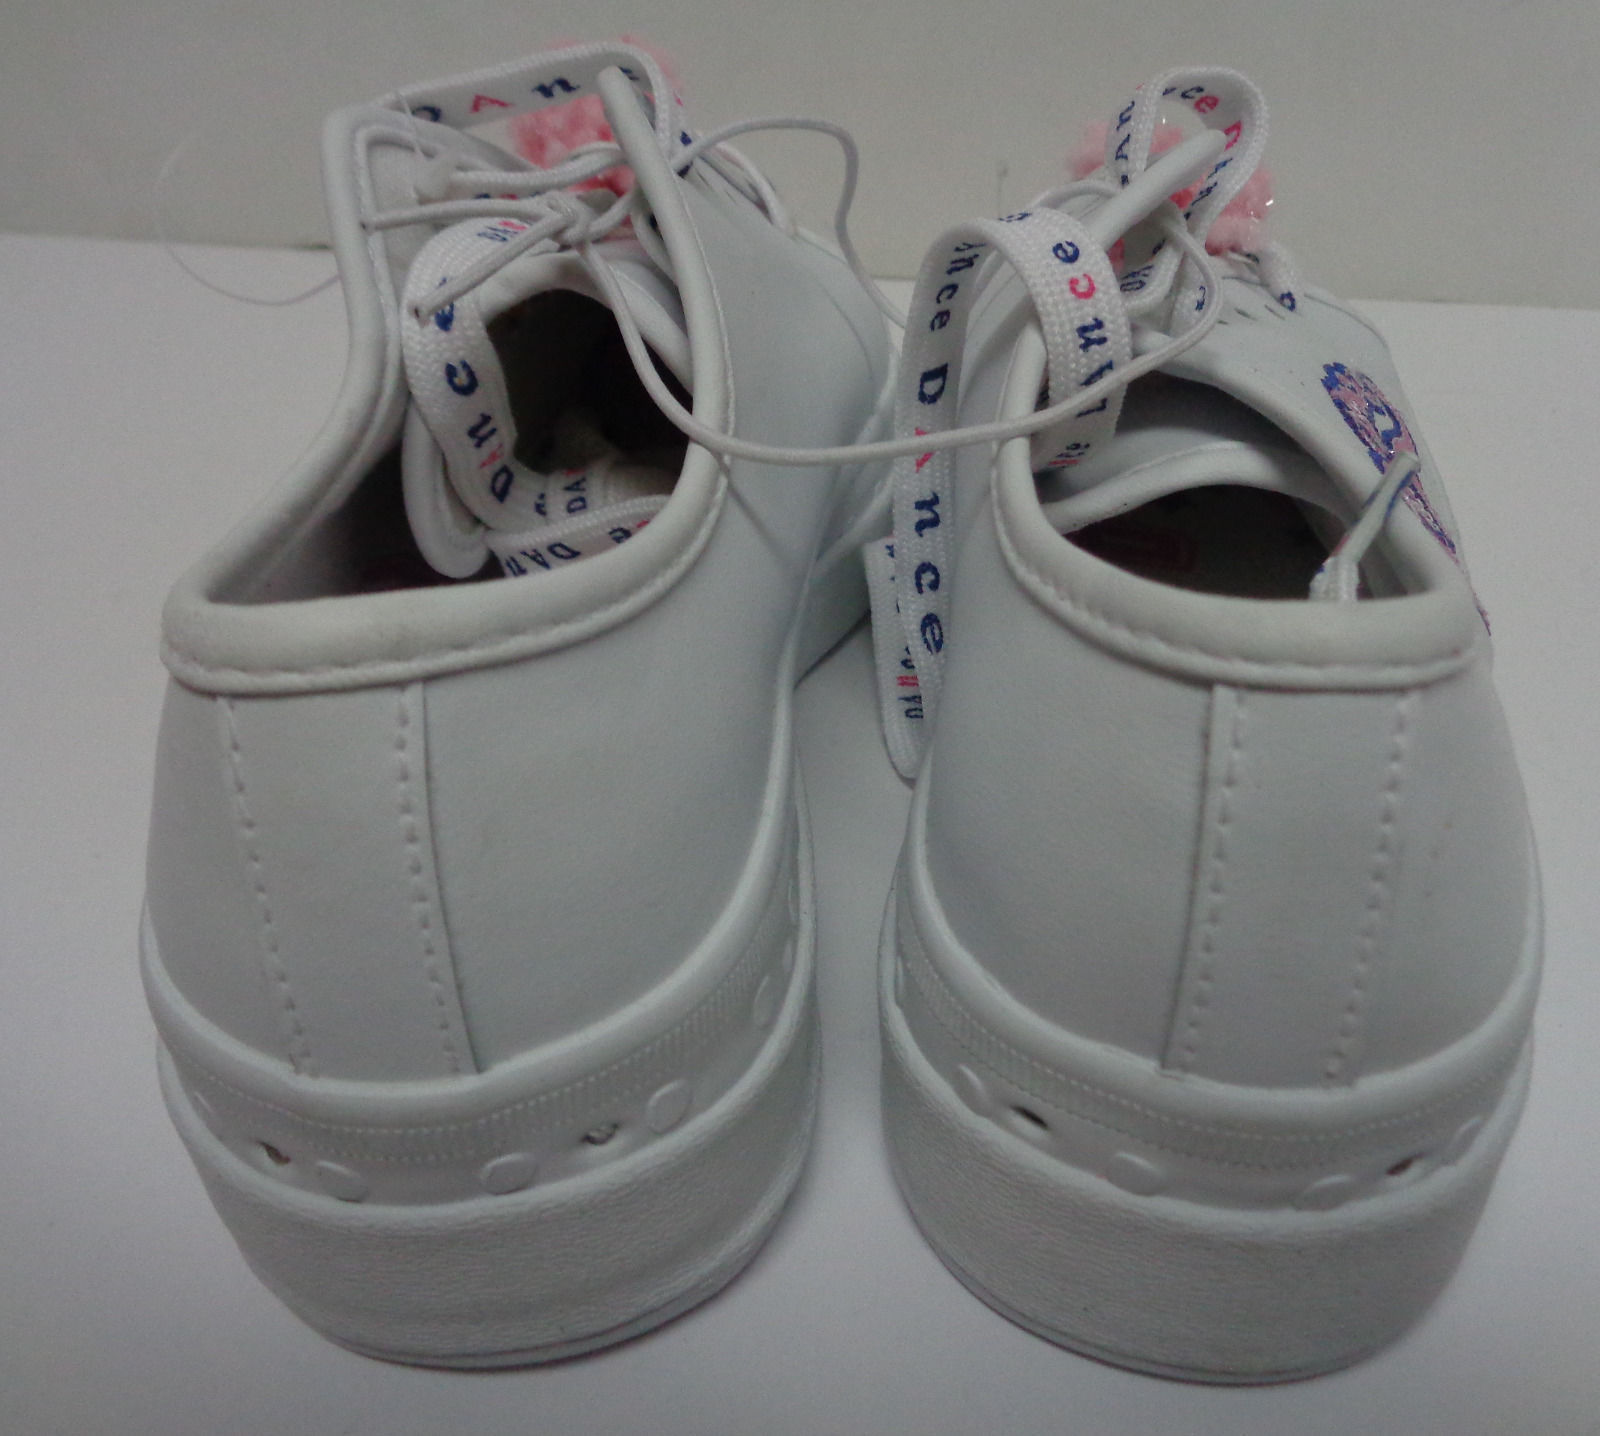 Leather Tennis Shoes DANCE Pom-Pom Girls Size 10.5 NEW No Boundarie